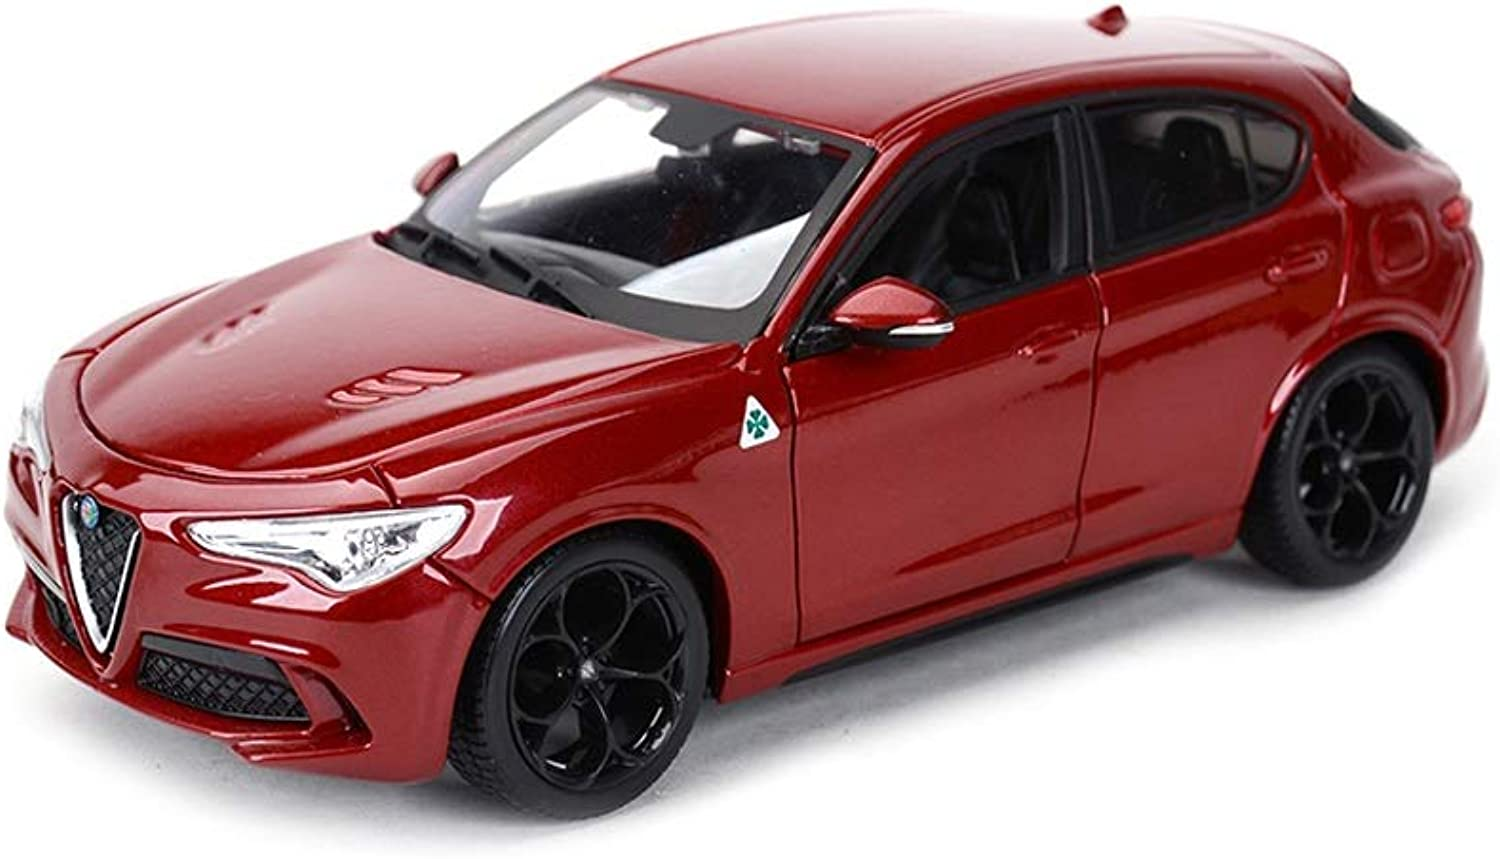 SHLINCar model DieCasting Car Alloy Car Model Simulation 1 24 Proportional Sports Car Alfa Romeo Stelvio Model Gift for Boys Toddlers Kids (color   RED)